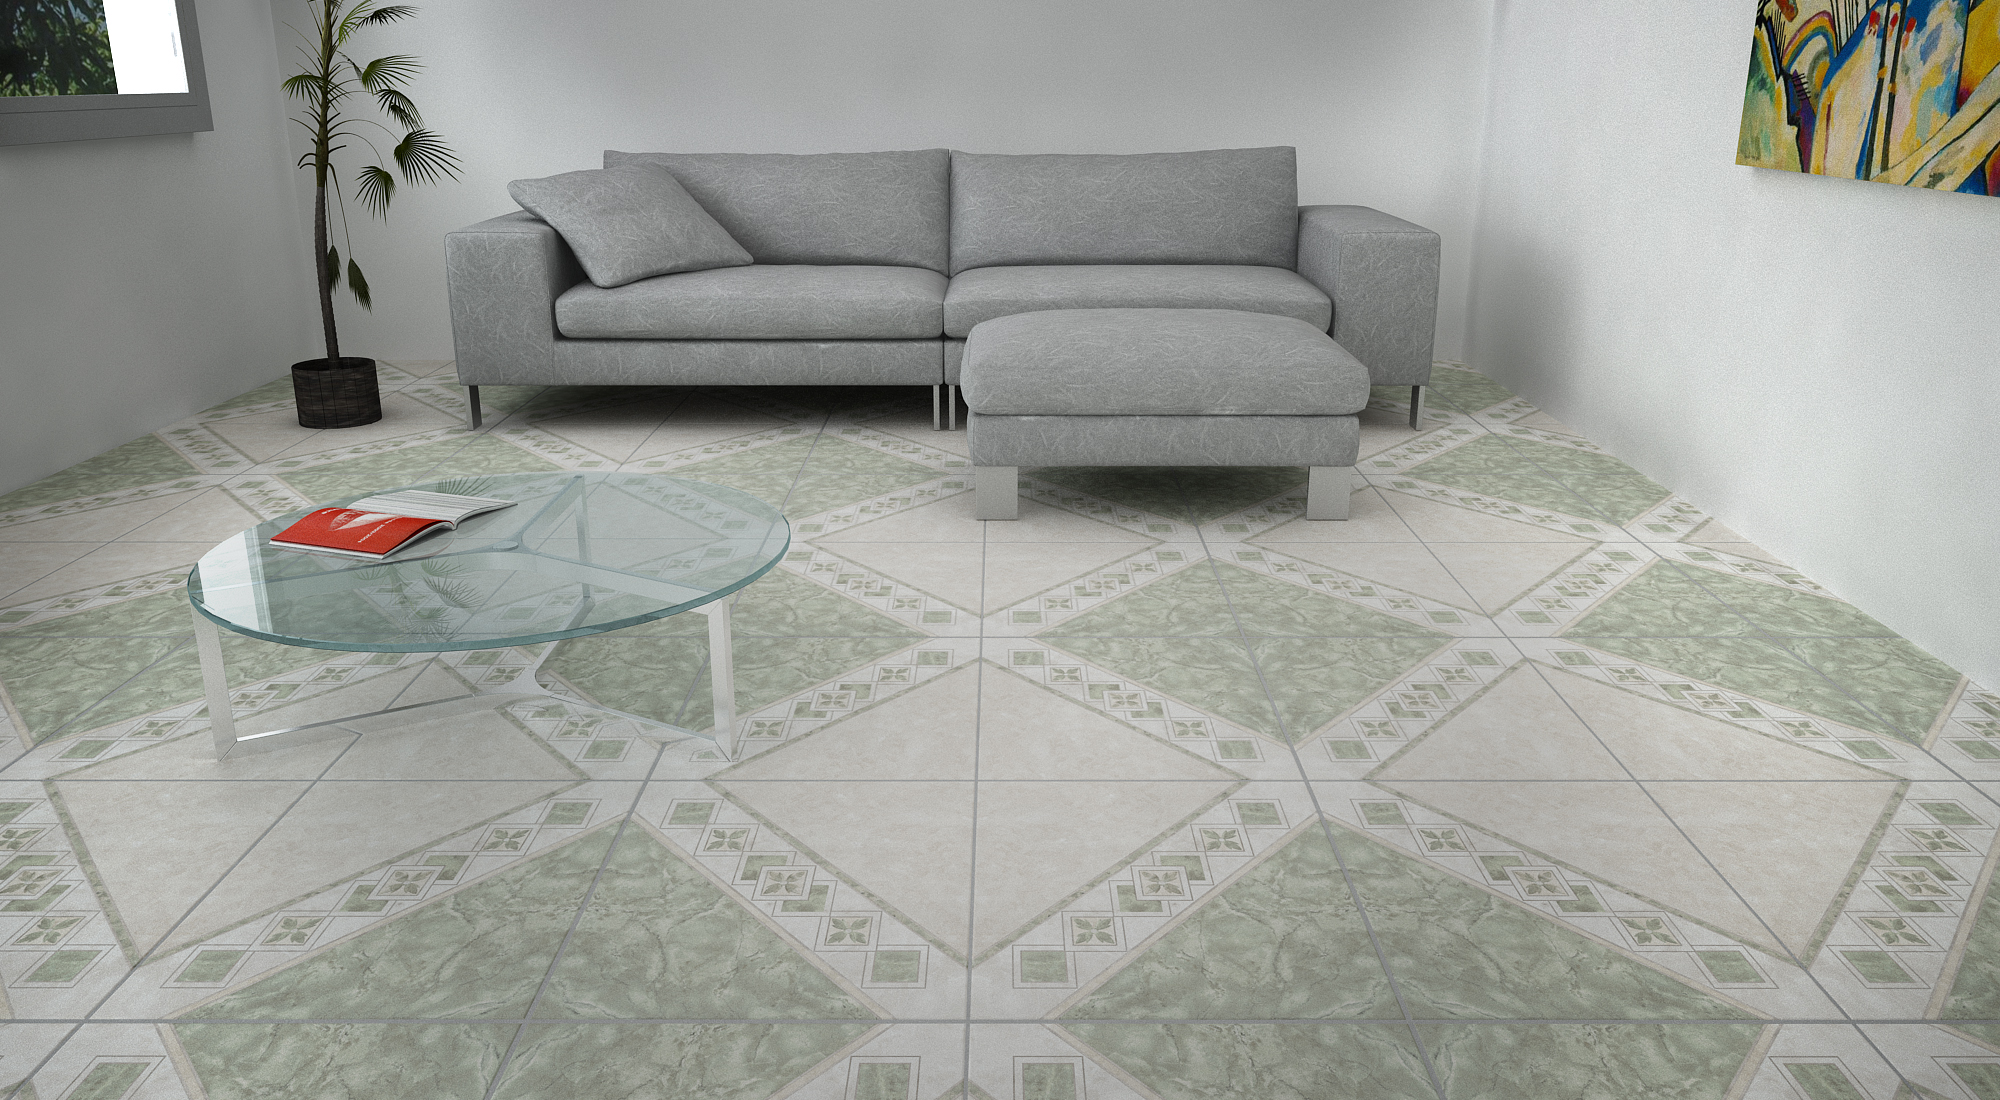 Tile 20x20 Cer Lotus VR